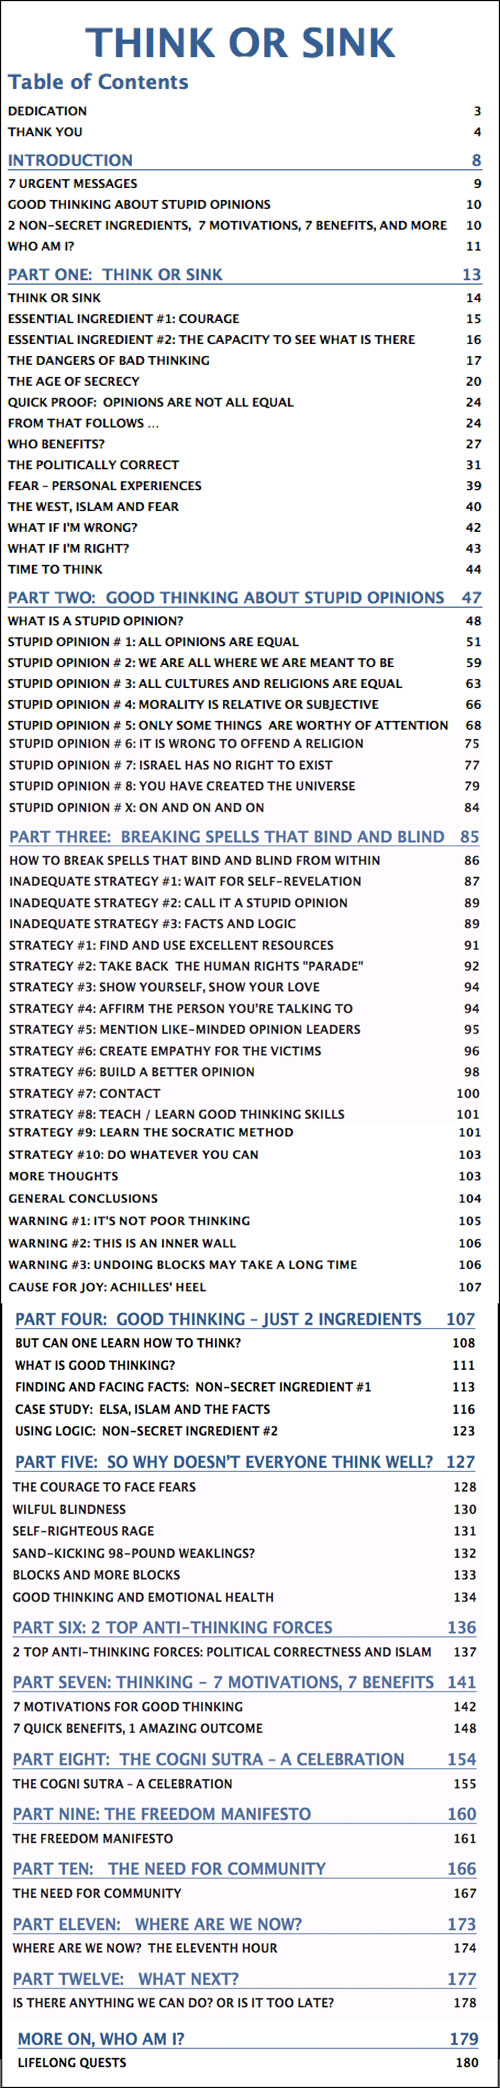 Think or Sink - table of contents